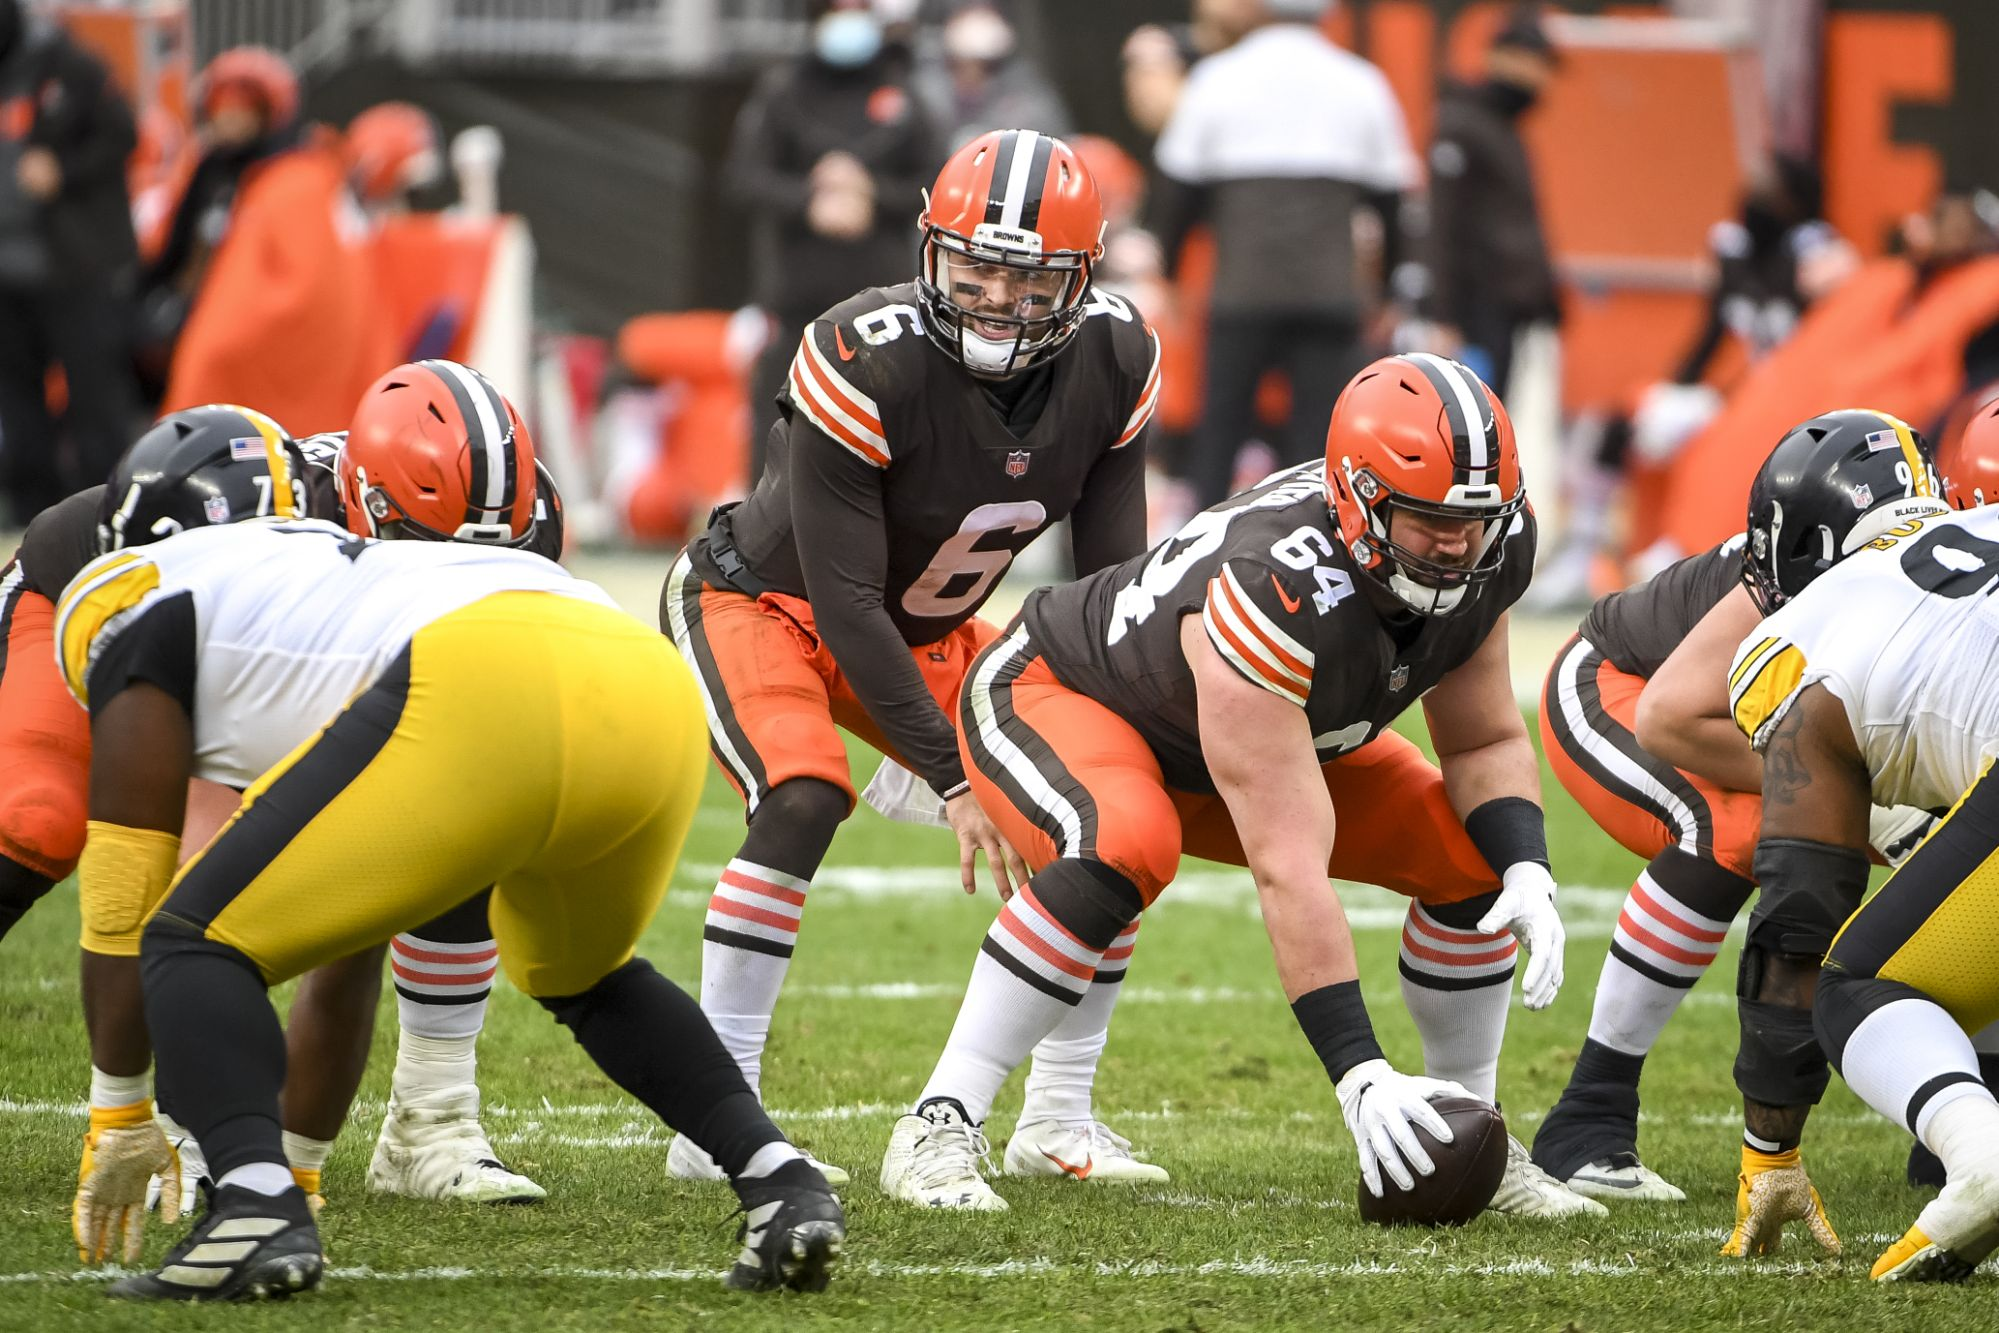 What would it take for NFL to postpone a Browns-Steelers playoff game? We may soon find out